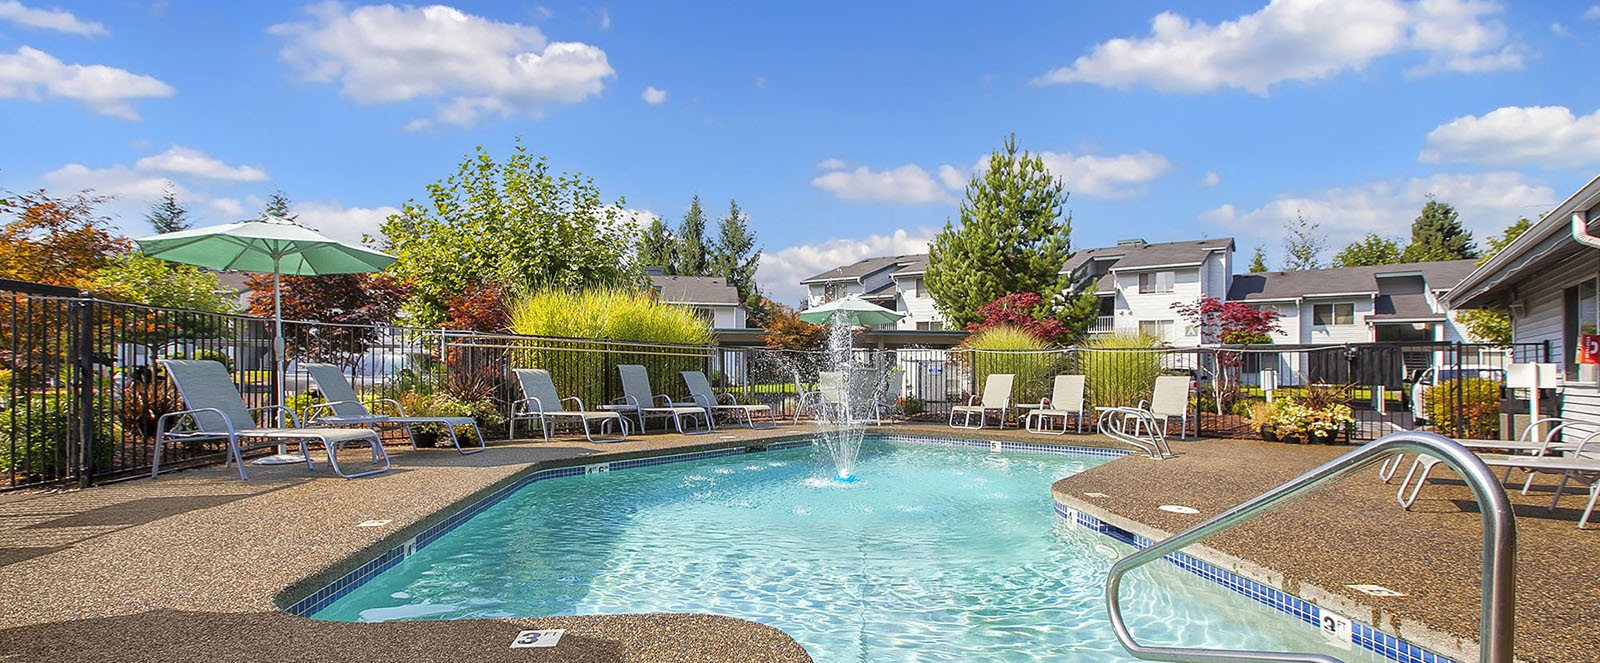 Meridian Garden | Apartments in Kent, WA